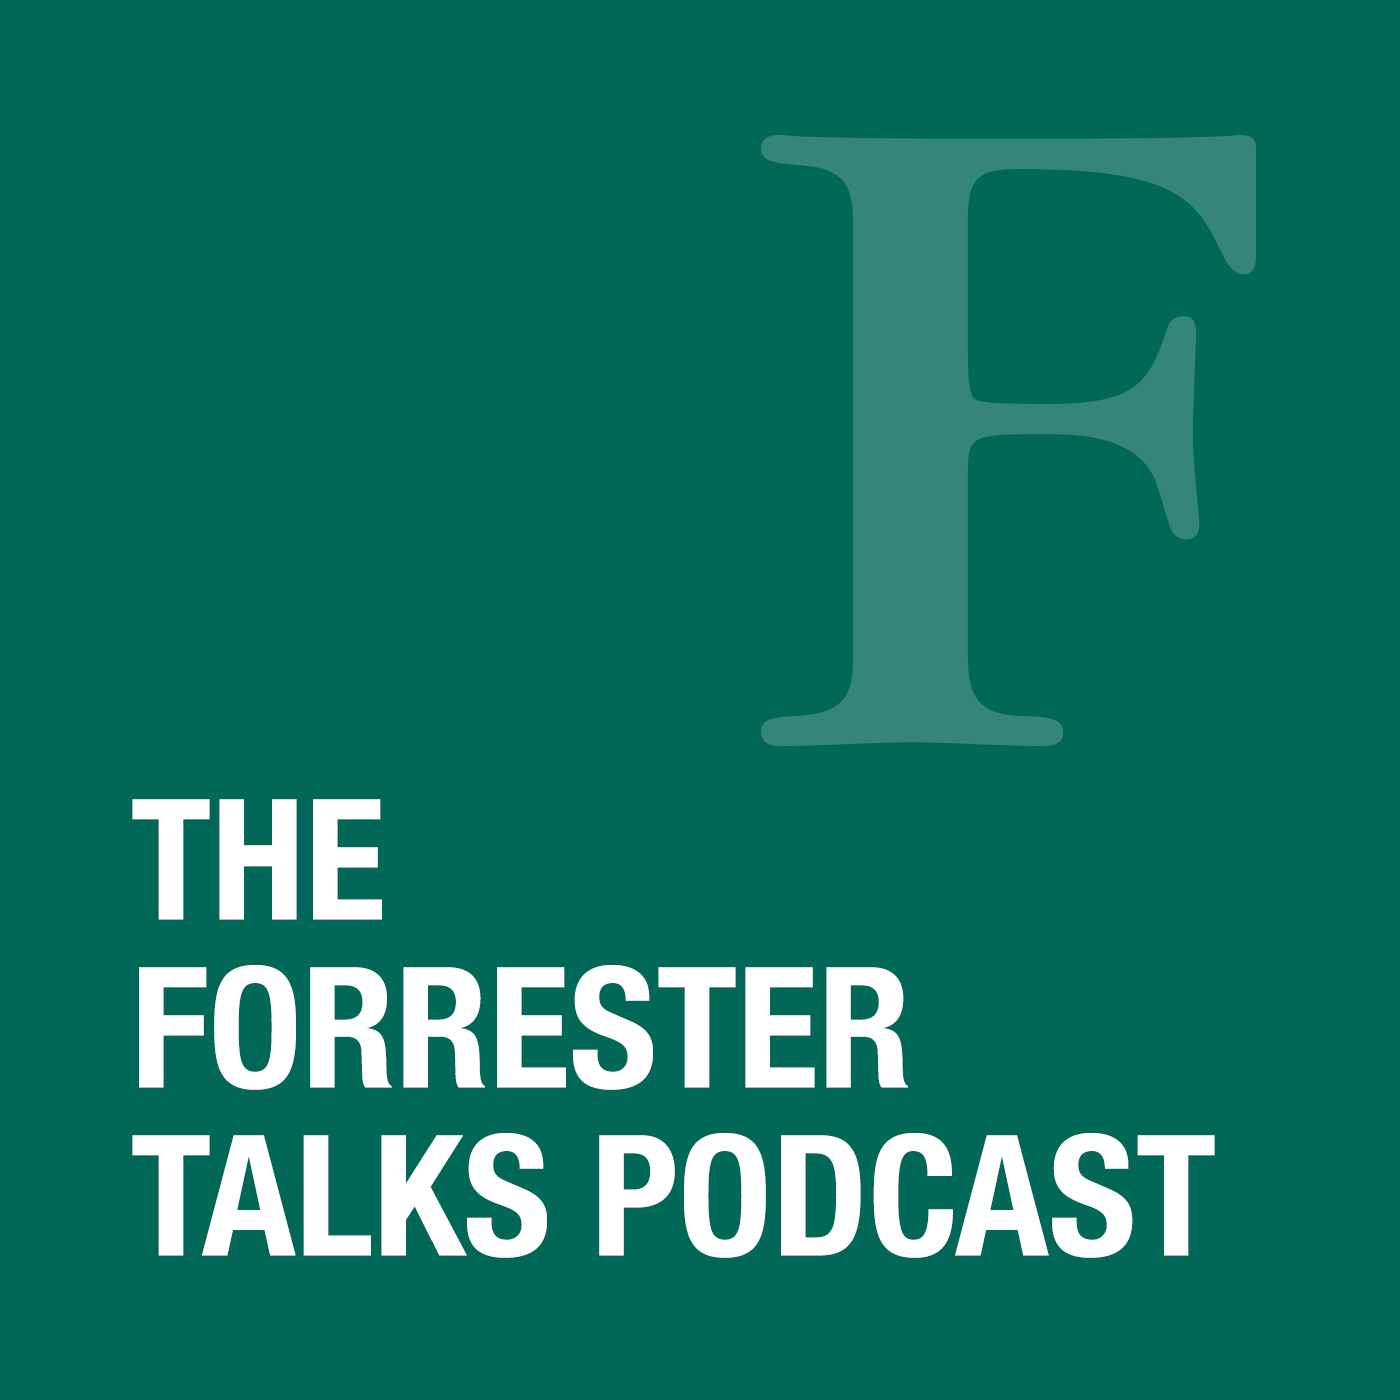 The Forrester Talks Podcast